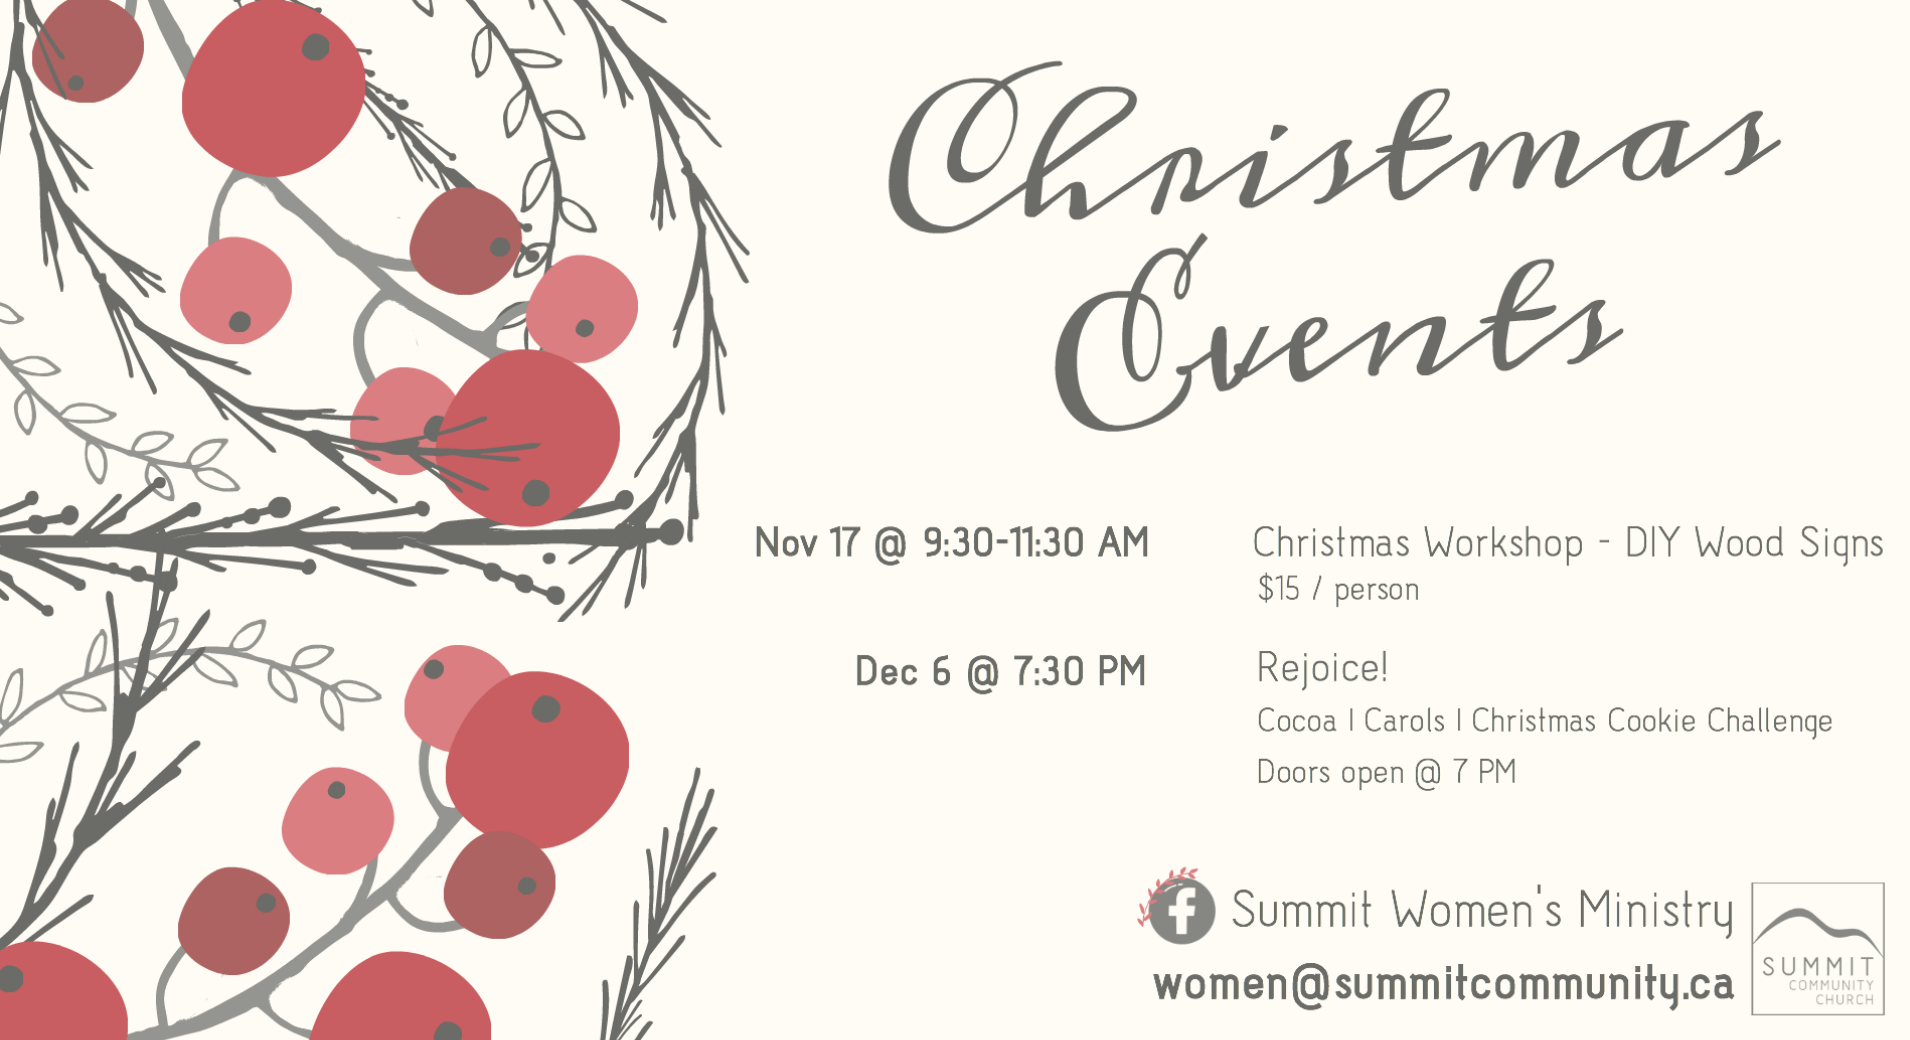 Women's Christmas Events Card 2018